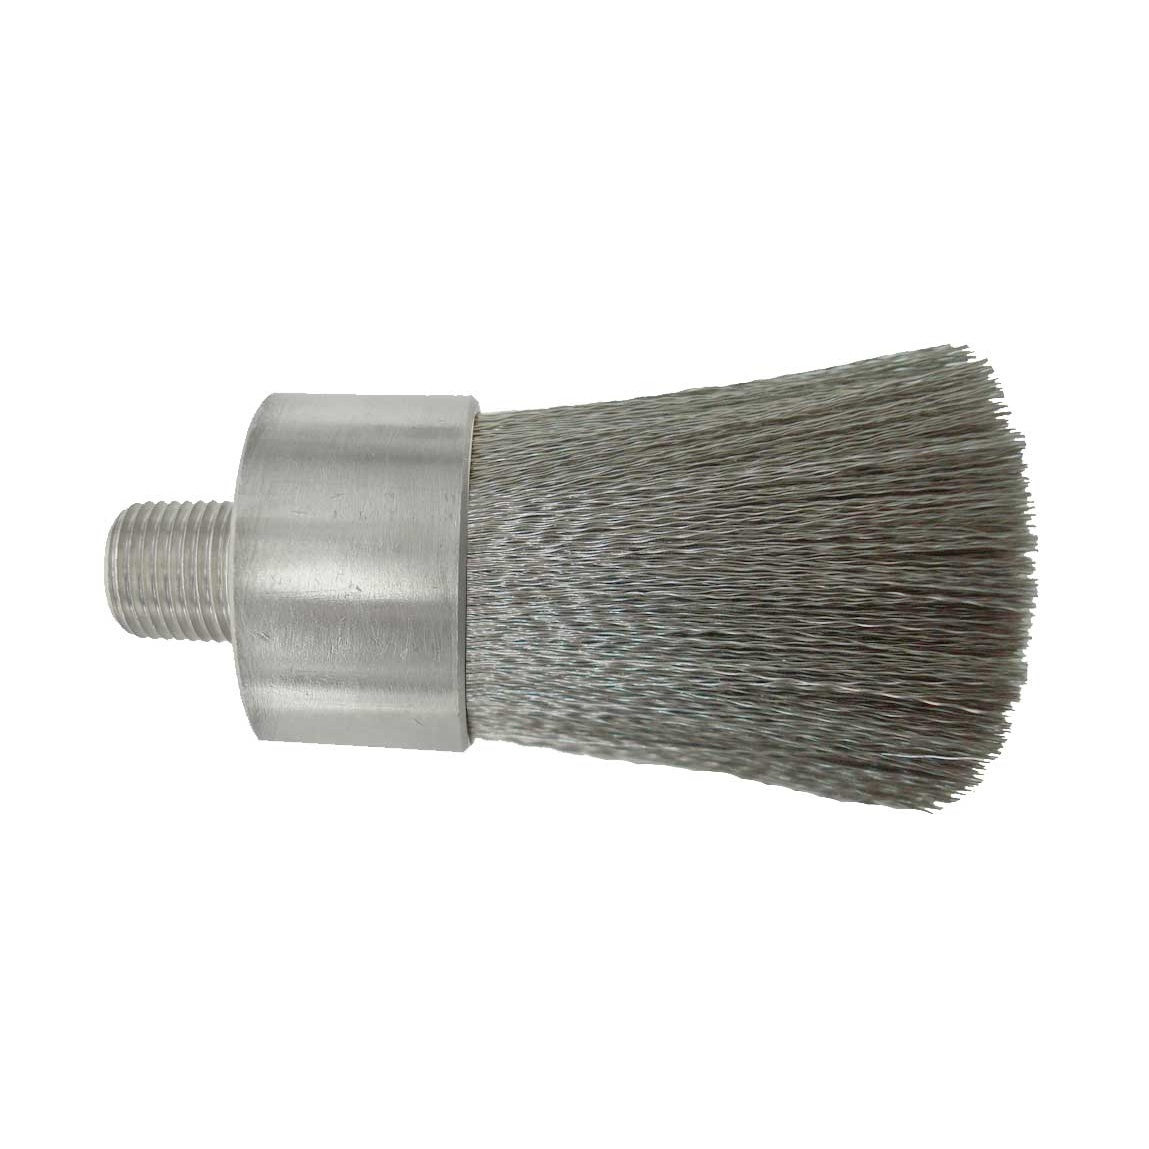 "1"" Diameter Body, .005"" Stainless Steel Fill, .125"" Orifice, Male Thread"